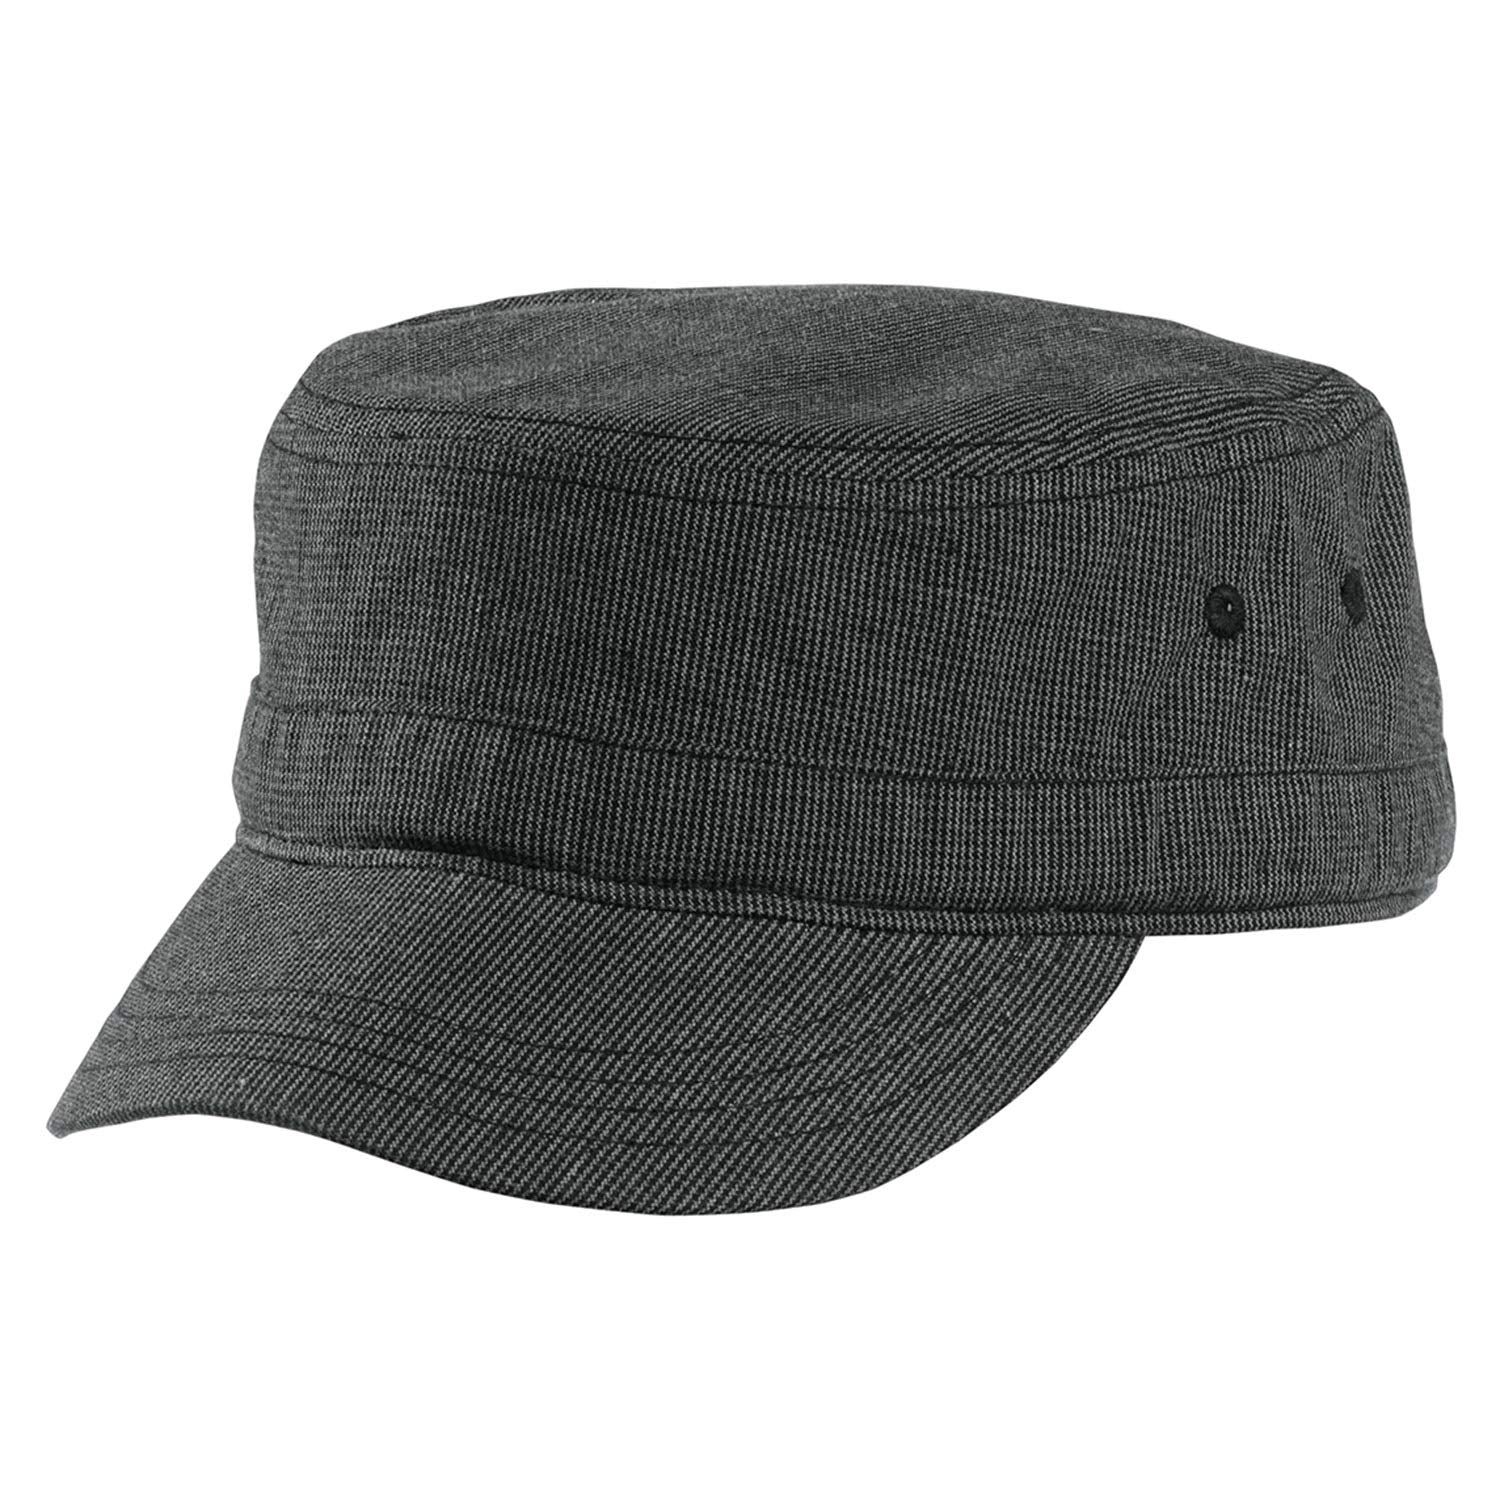 375dba5915f33 Armycrew Houndstooth Unstructured Cotton Cadet Style Army Cap